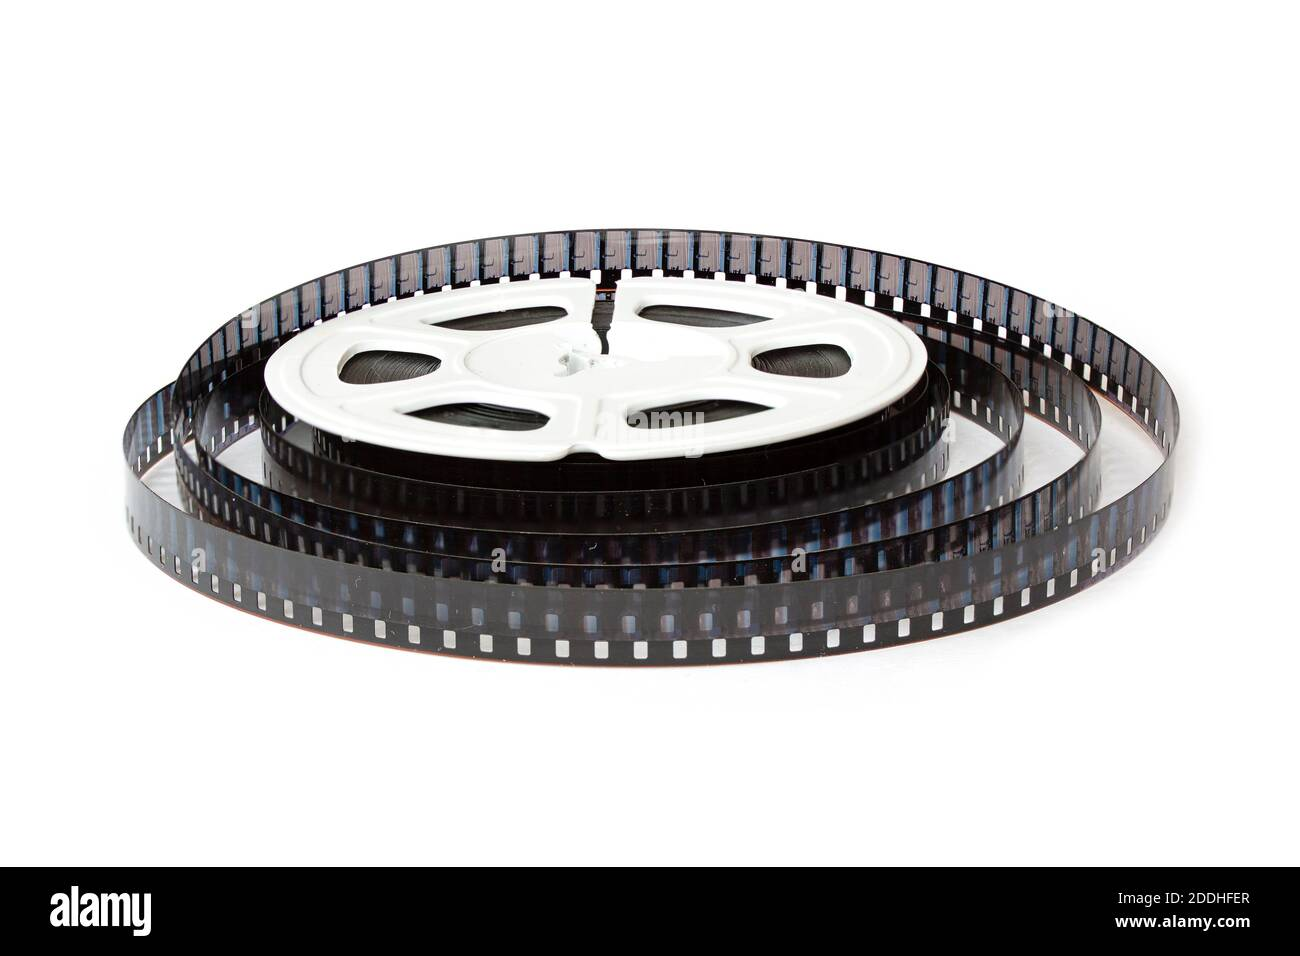 8mm film reel with film strips scattered around. Close-up image isolated on white background. Stock Photo